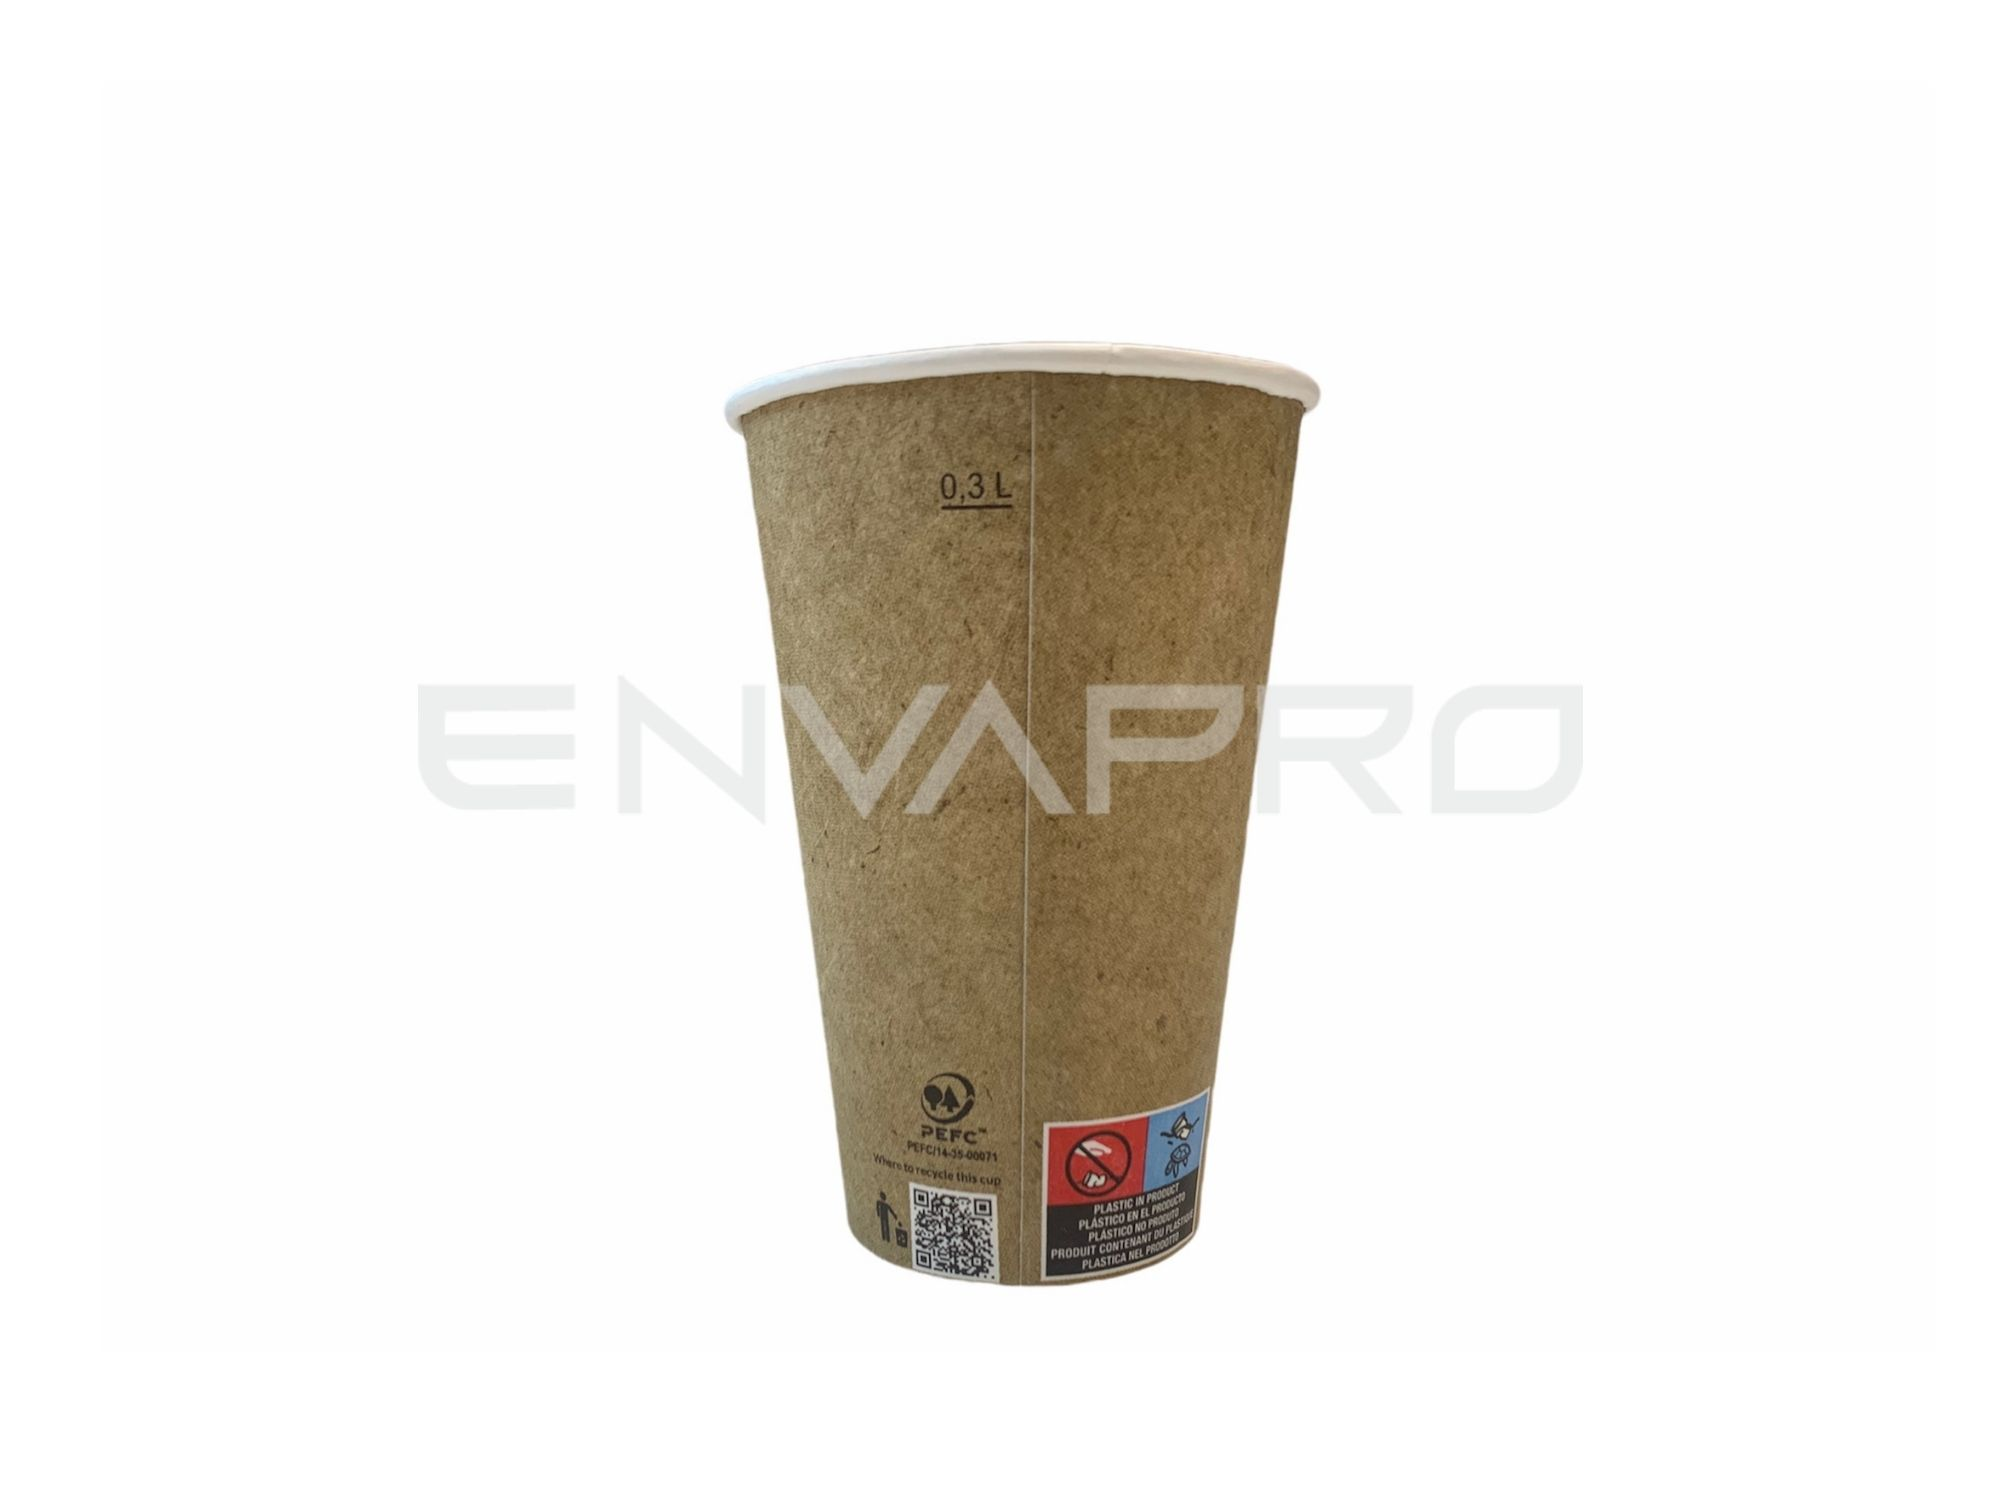 VASO CARTÓN PARED GRUESA KRAFT ALTO BOCA DE 8 cmØ 12oz